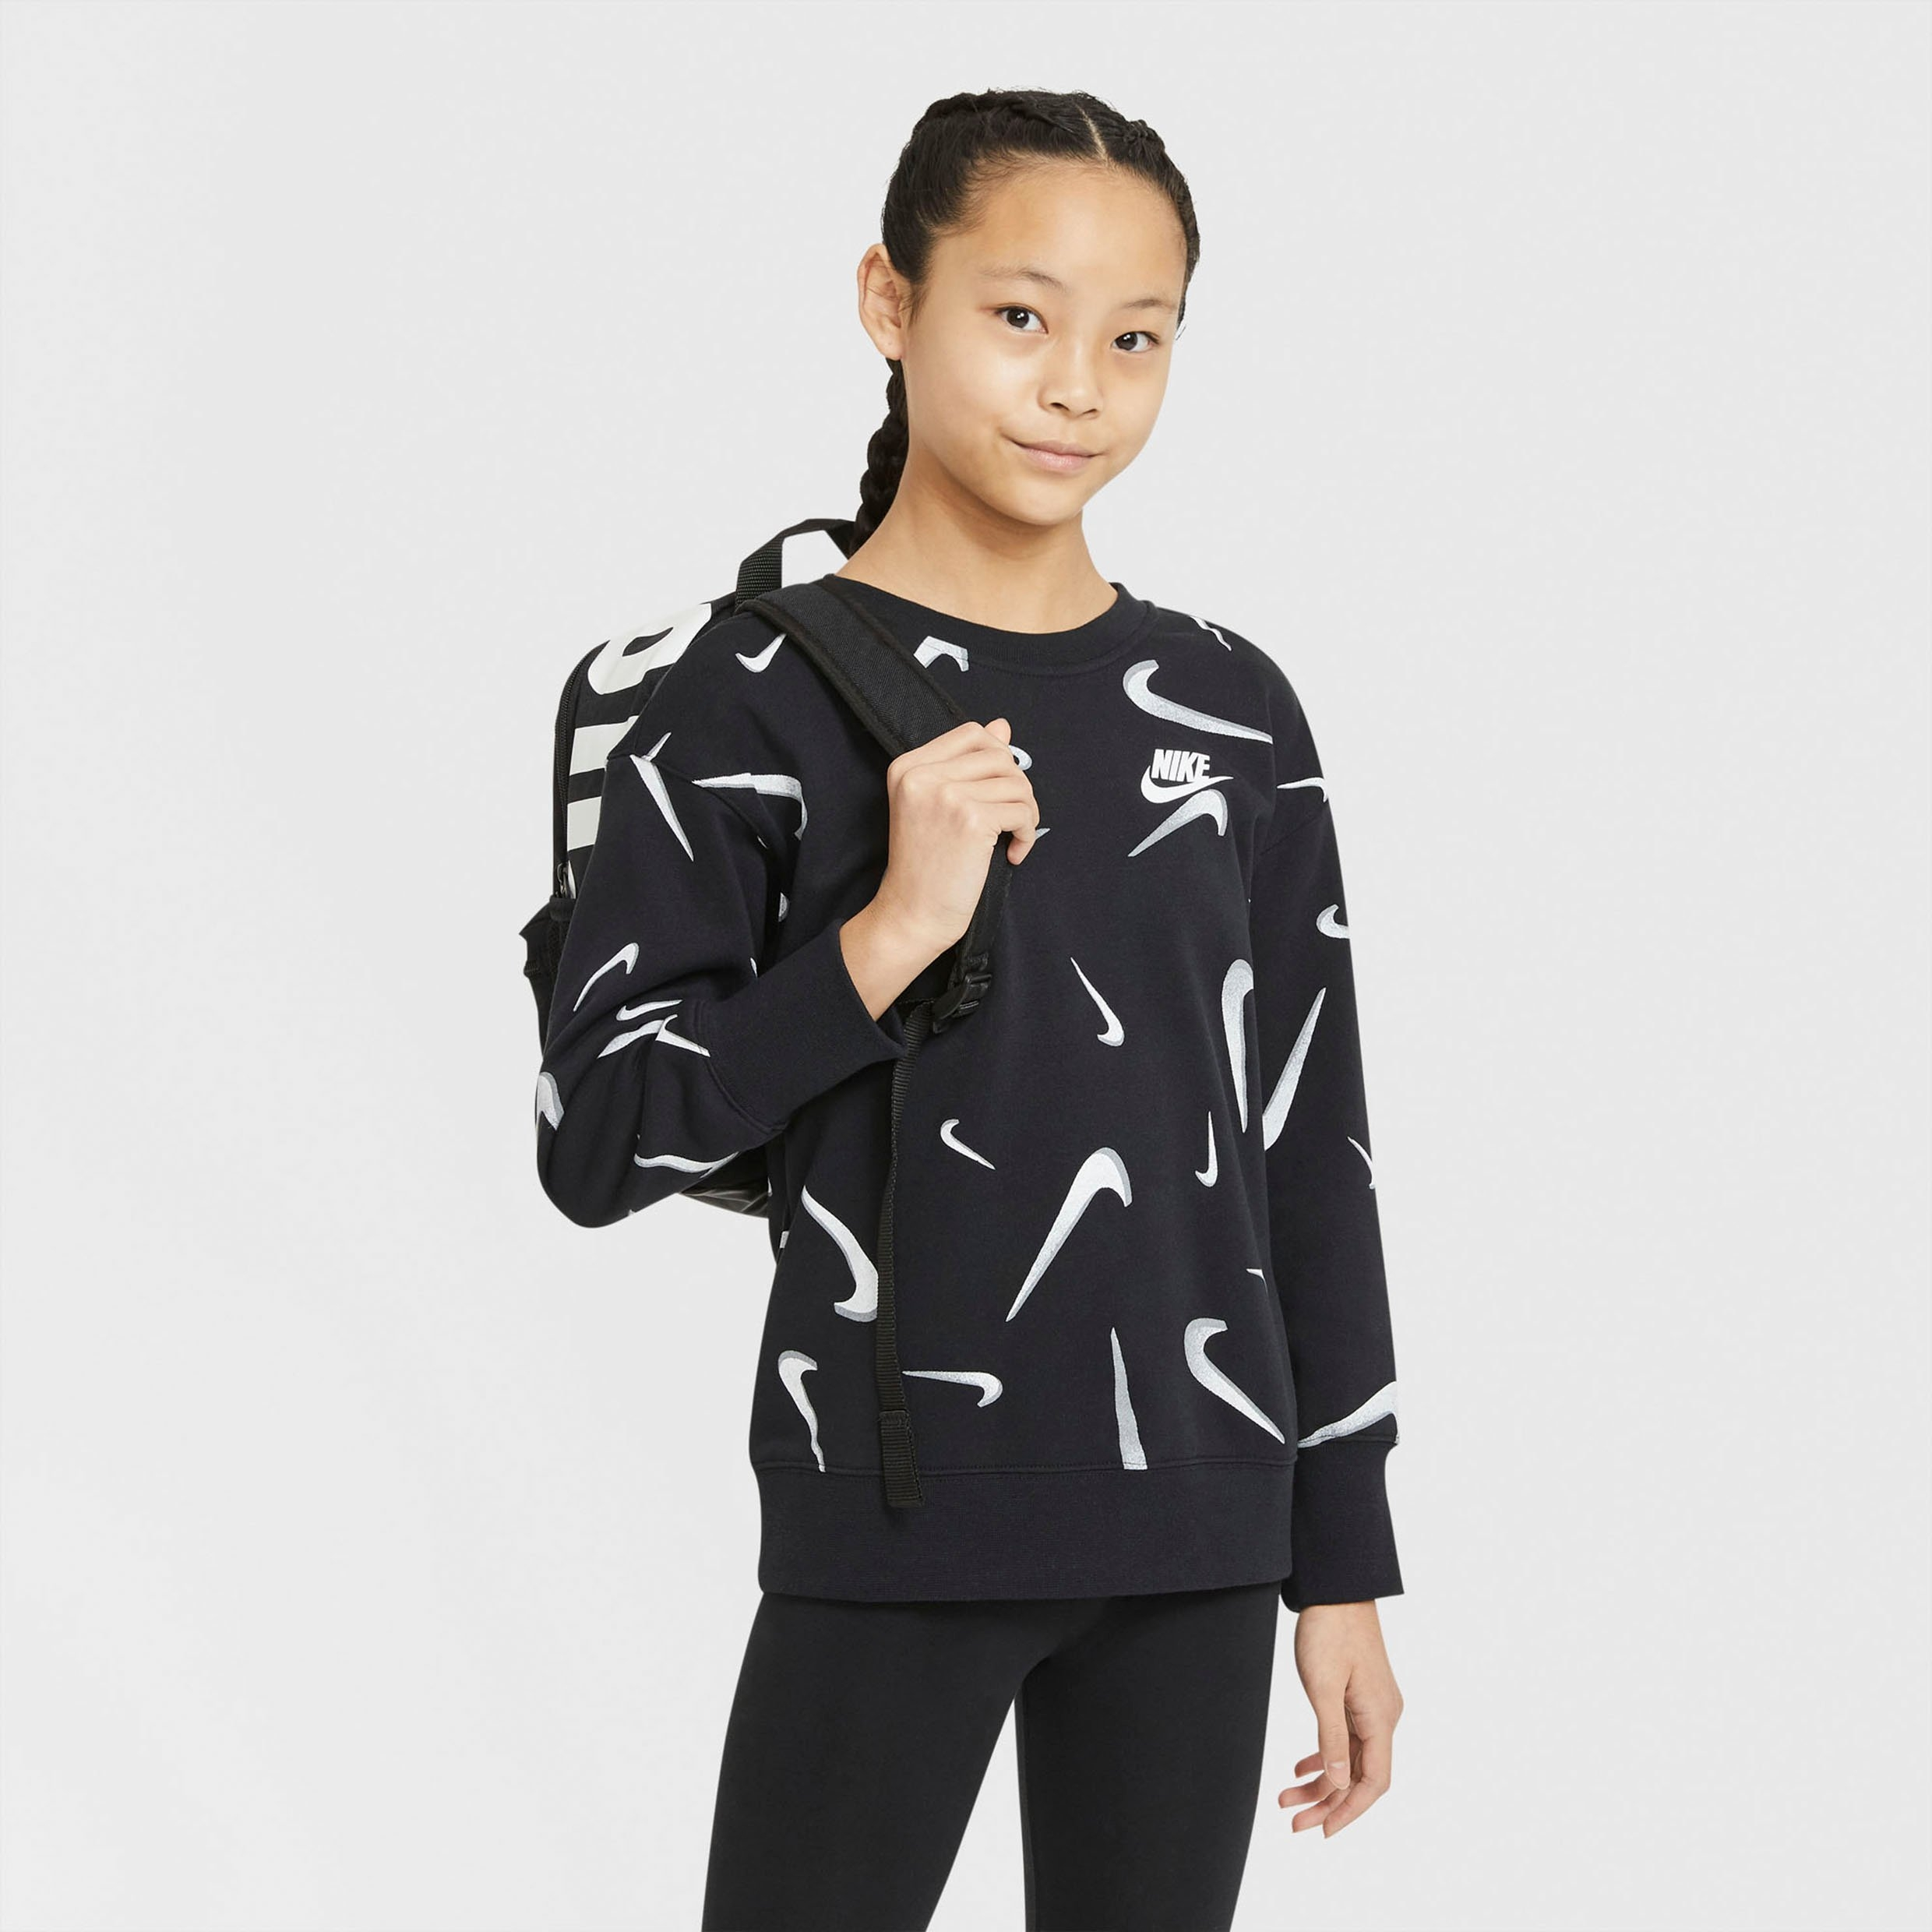 Nike Sportswear Nike sweatshirt »G Nsw Ft Aop Bf Crew Big Kids' (girls')« in de webshop van OTTO kopen